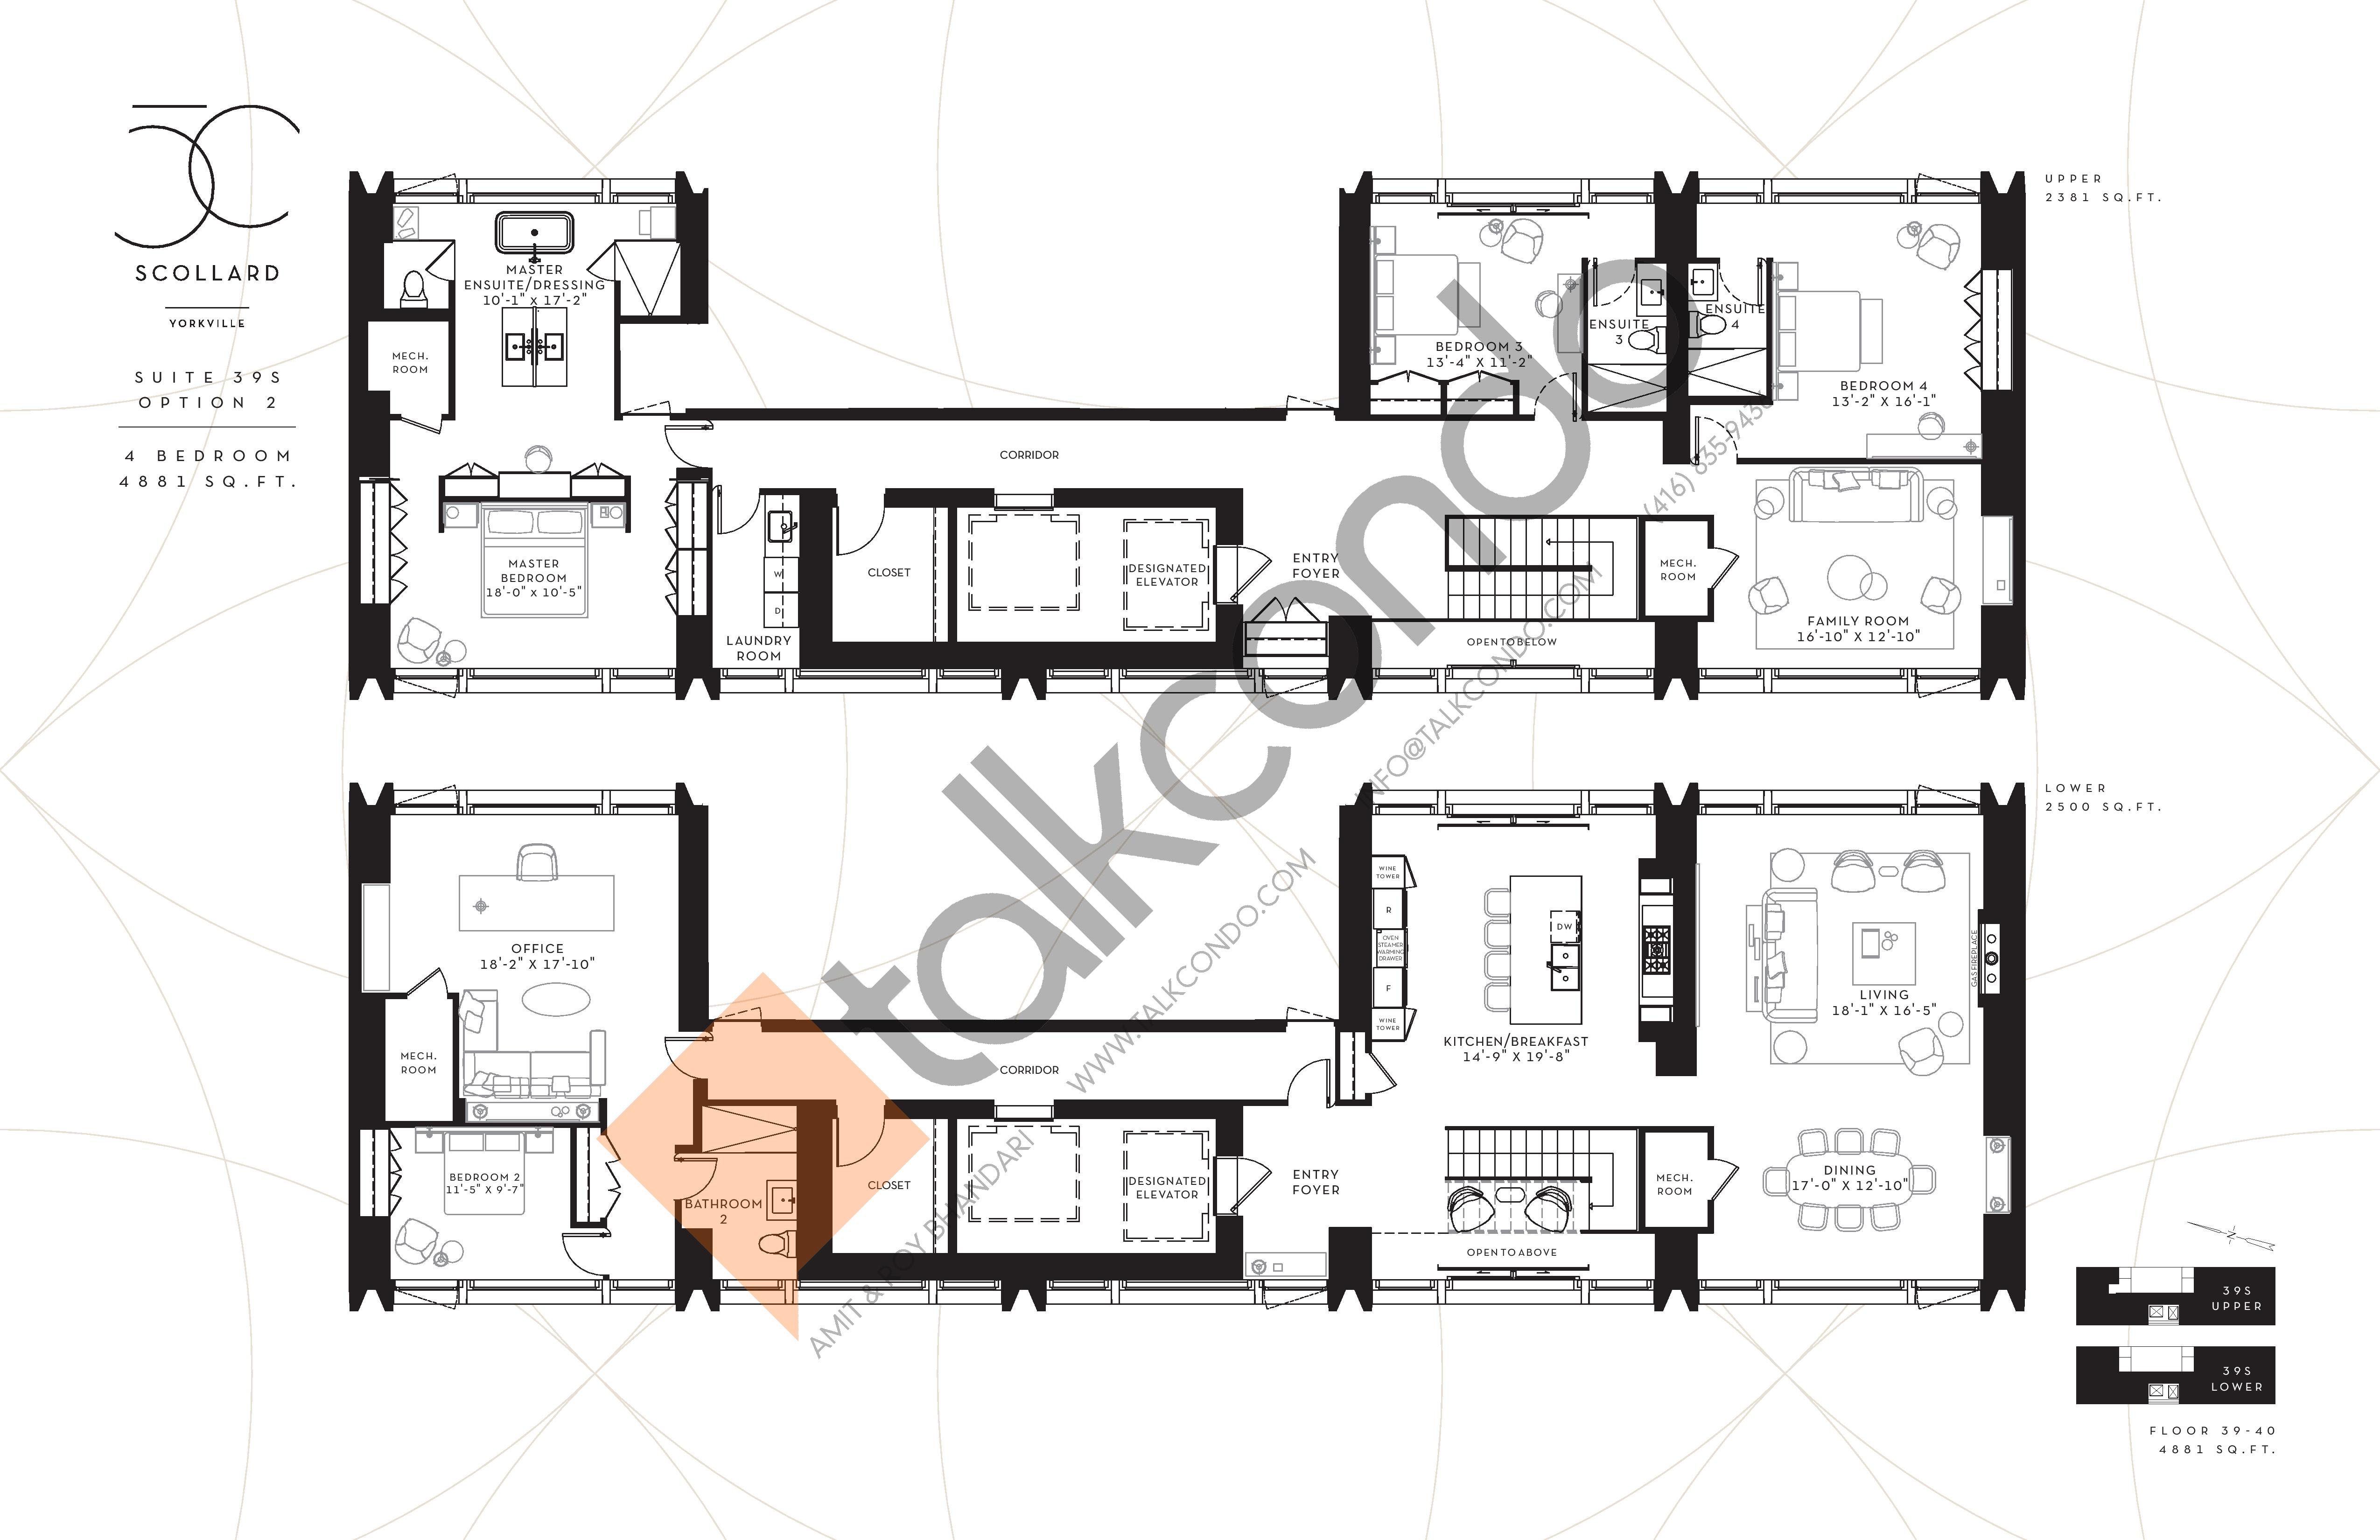 Suite 39S Option 2 Floor Plan at Fifty Scollard Condos - 4881 sq.ft